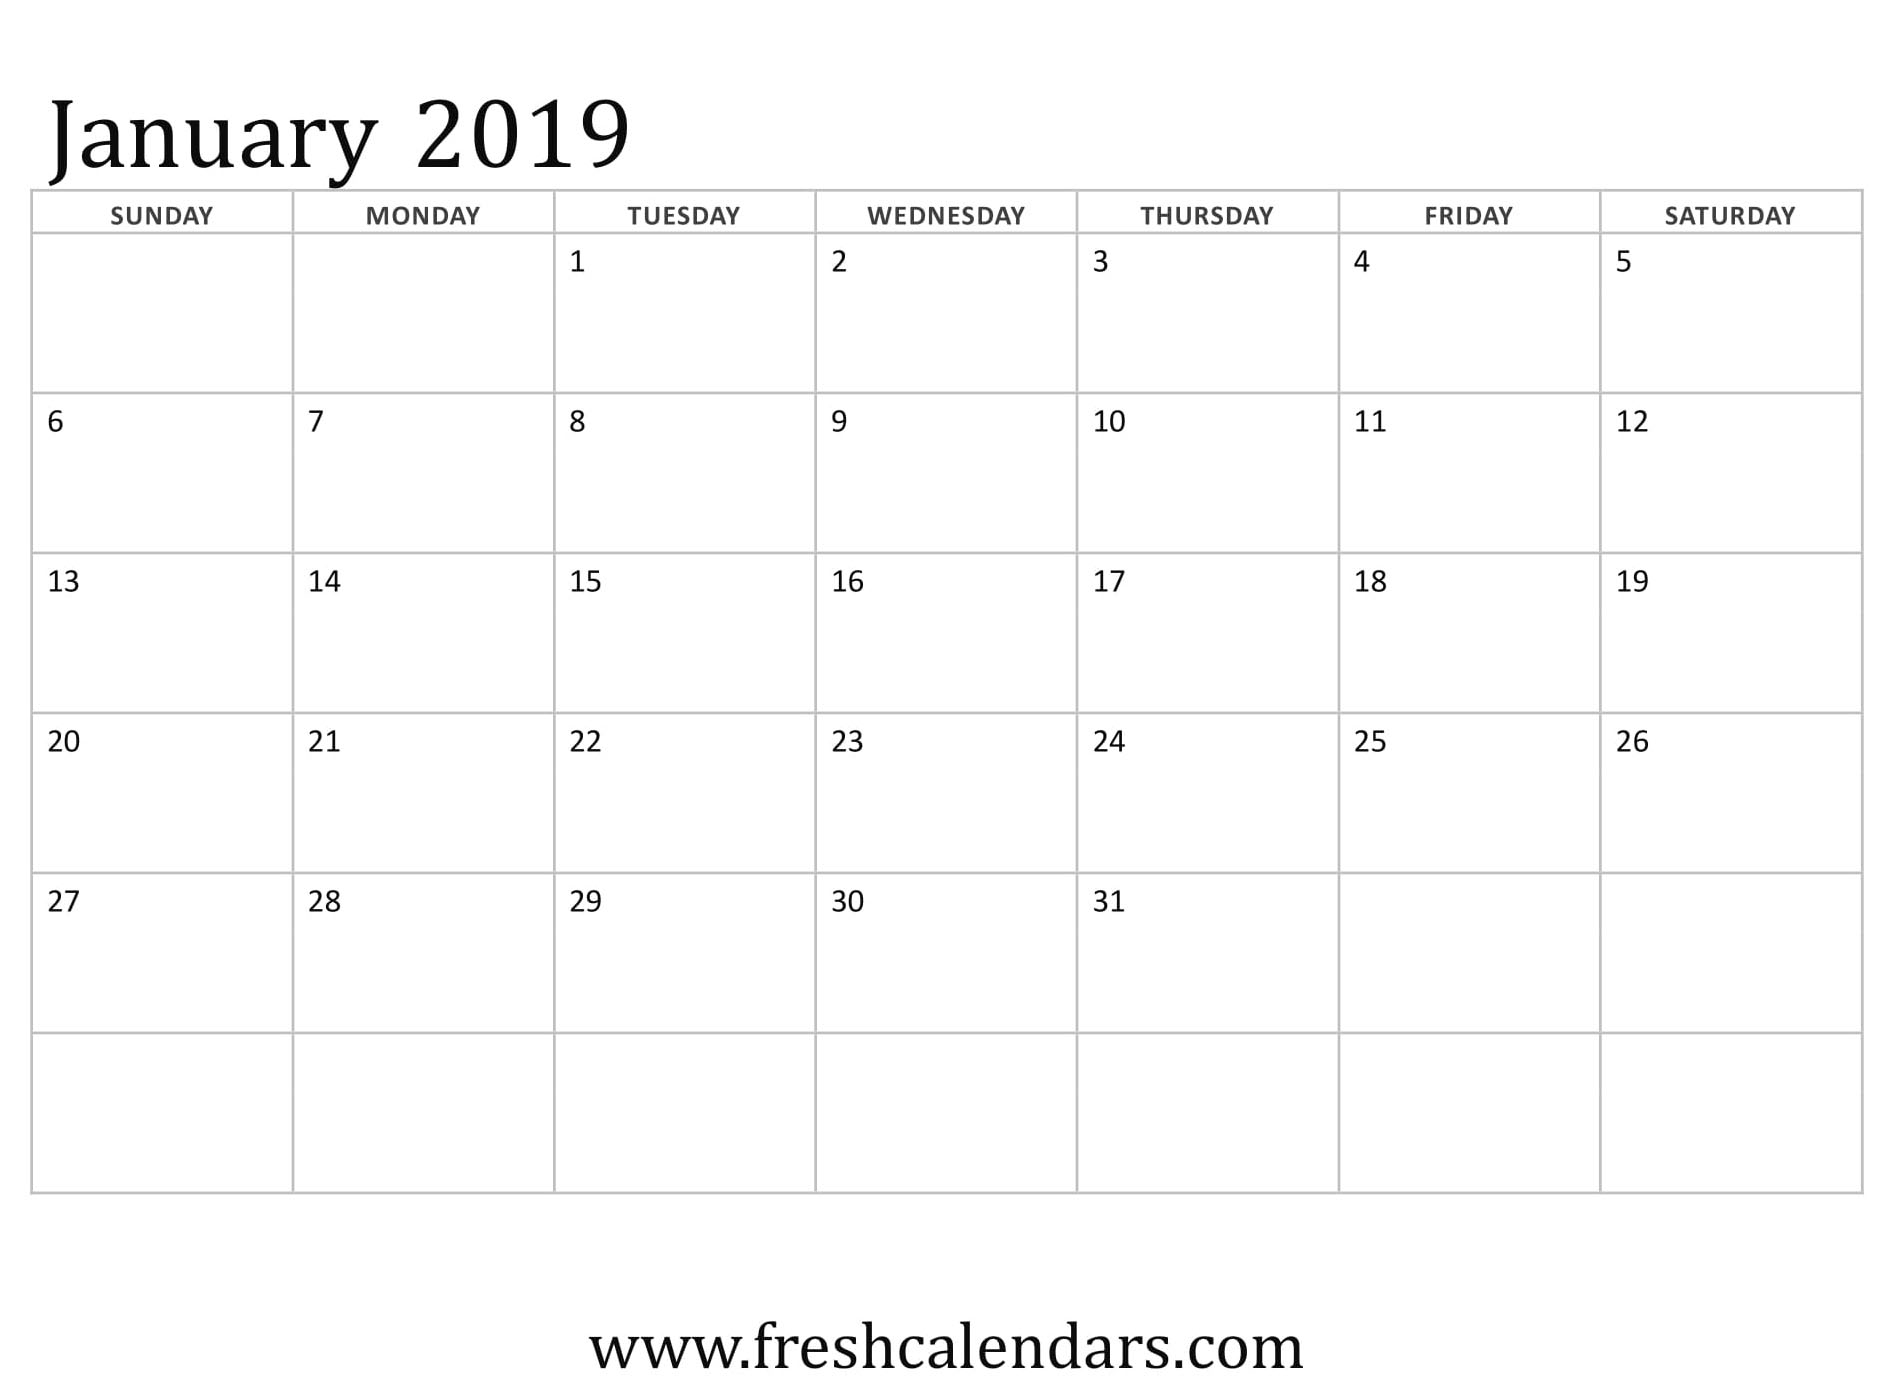 January Calendar 2019 Template January 2019 Calendar Printable   Fresh Calendars